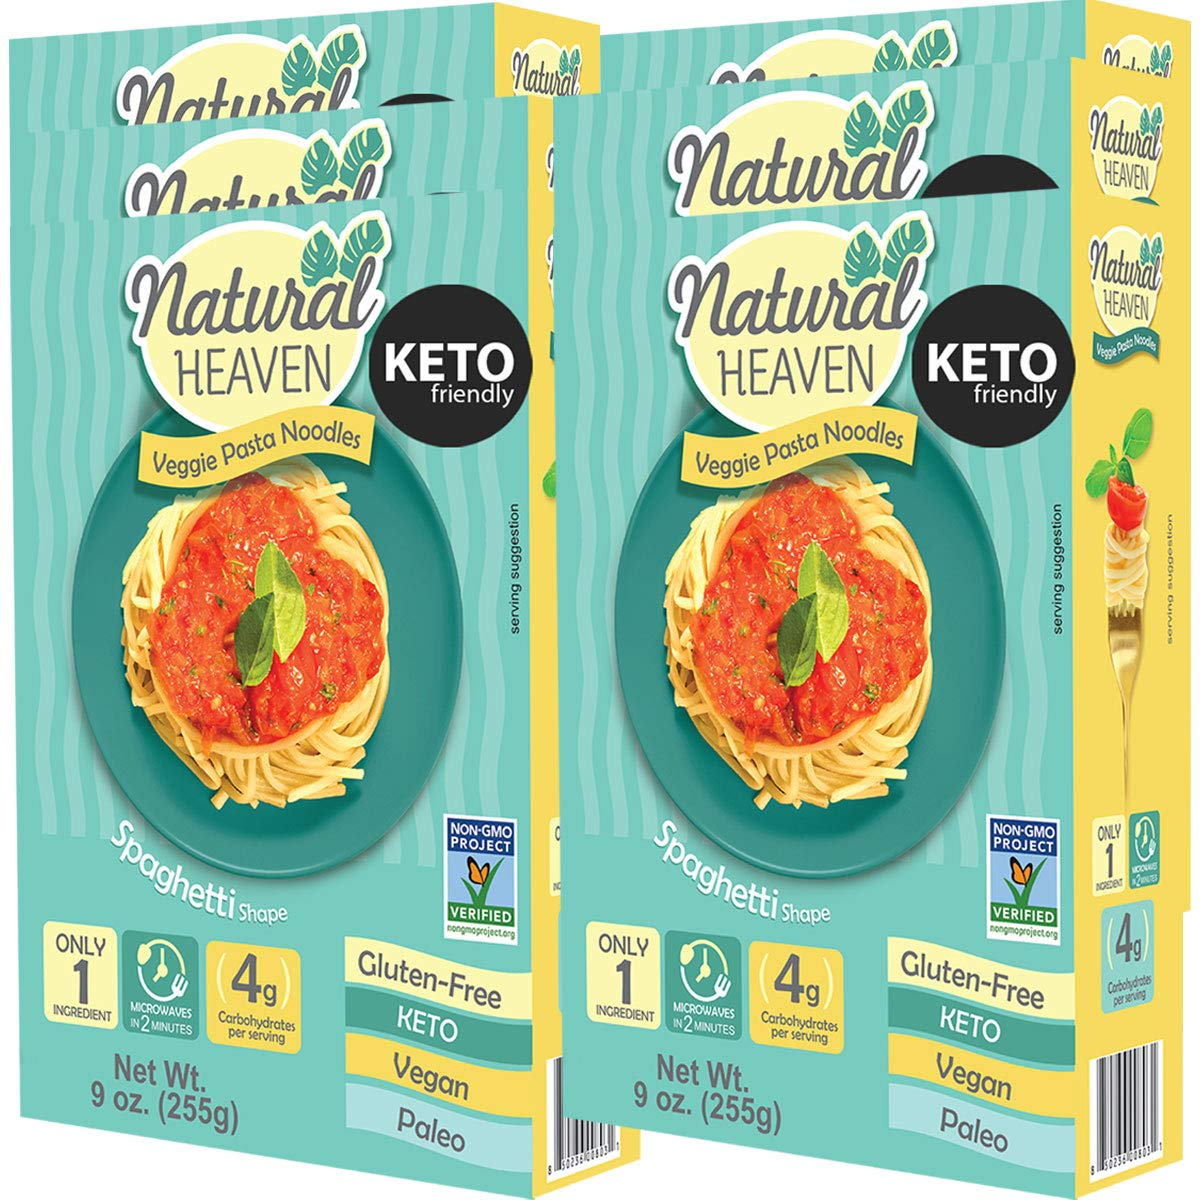 Natural Heaven 6 Spaghetti Hearts of Palm Noodles - 6 Packs of 9 oz - Low Carb, Gluten Free, Keto Friendly, Vegan, Paleo, Non Gmo, High Fiber, Plant Based, 6 Count by Natural Heaven